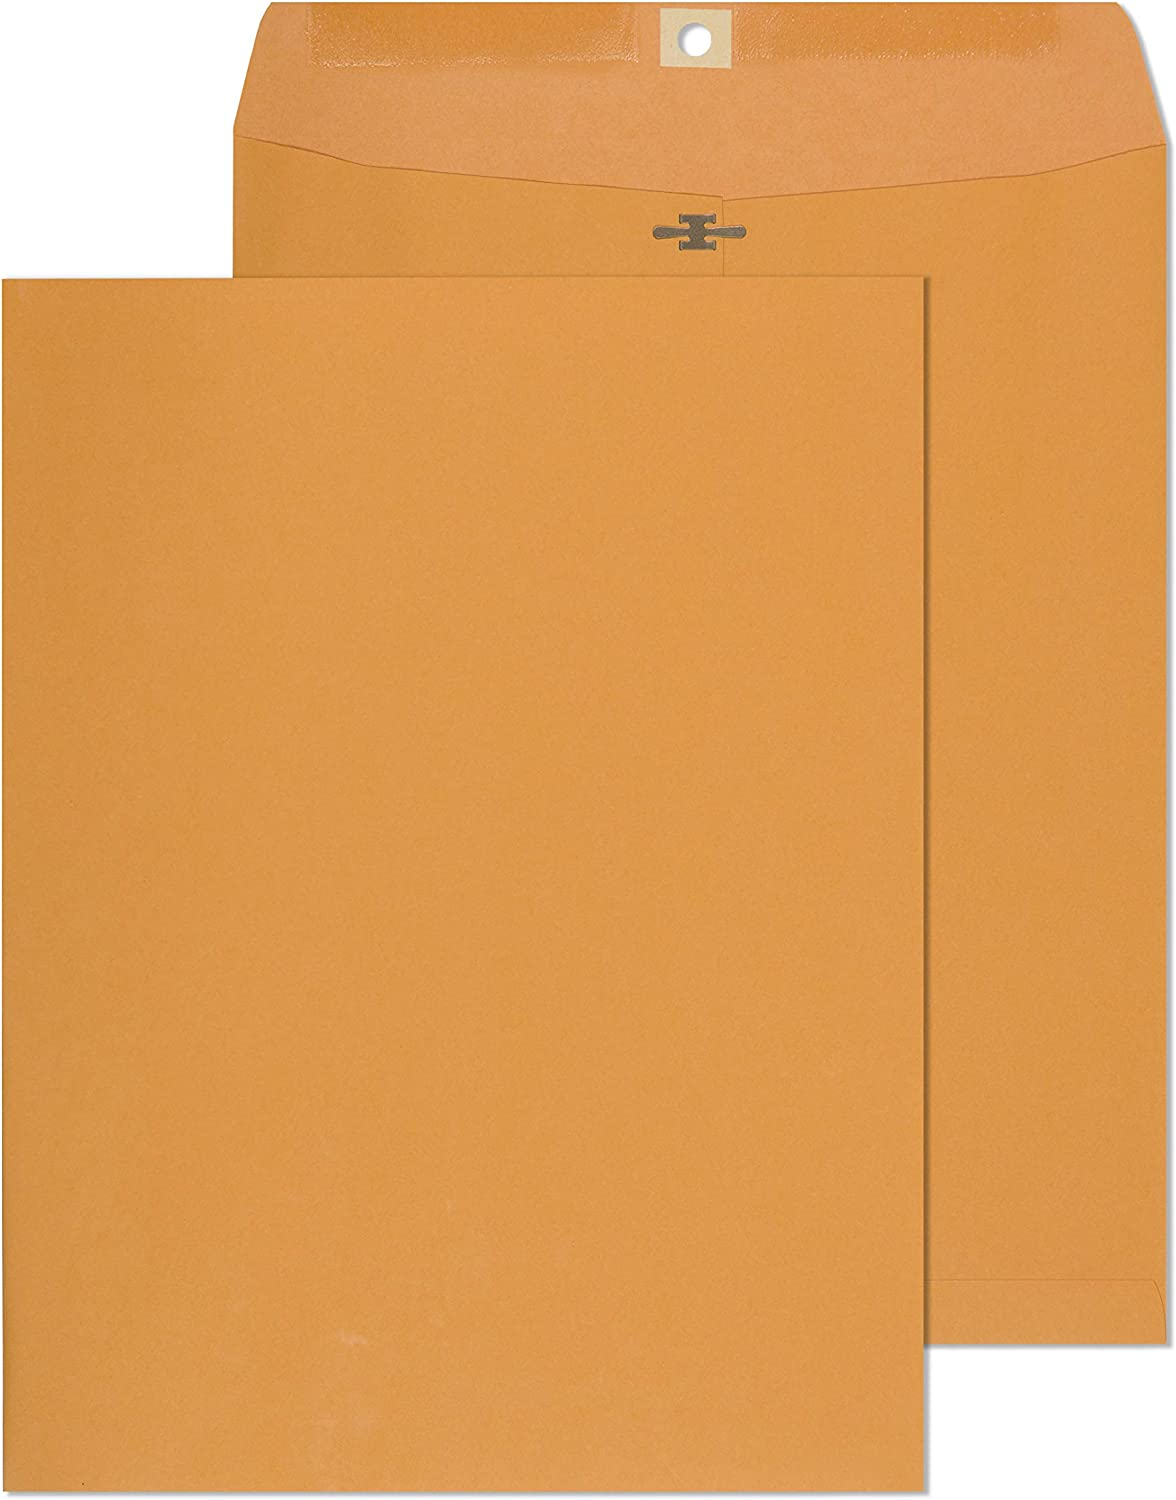 9 1/2 x 12 1/2 Clasp Envelopes – Brown Kraft Catalog Envelopes Gummed Seal Closure – 28lb Heavyweight Paper Envelopes for Home, Office, Business, Legal or School – 100 Box 9.5x12.5 inch